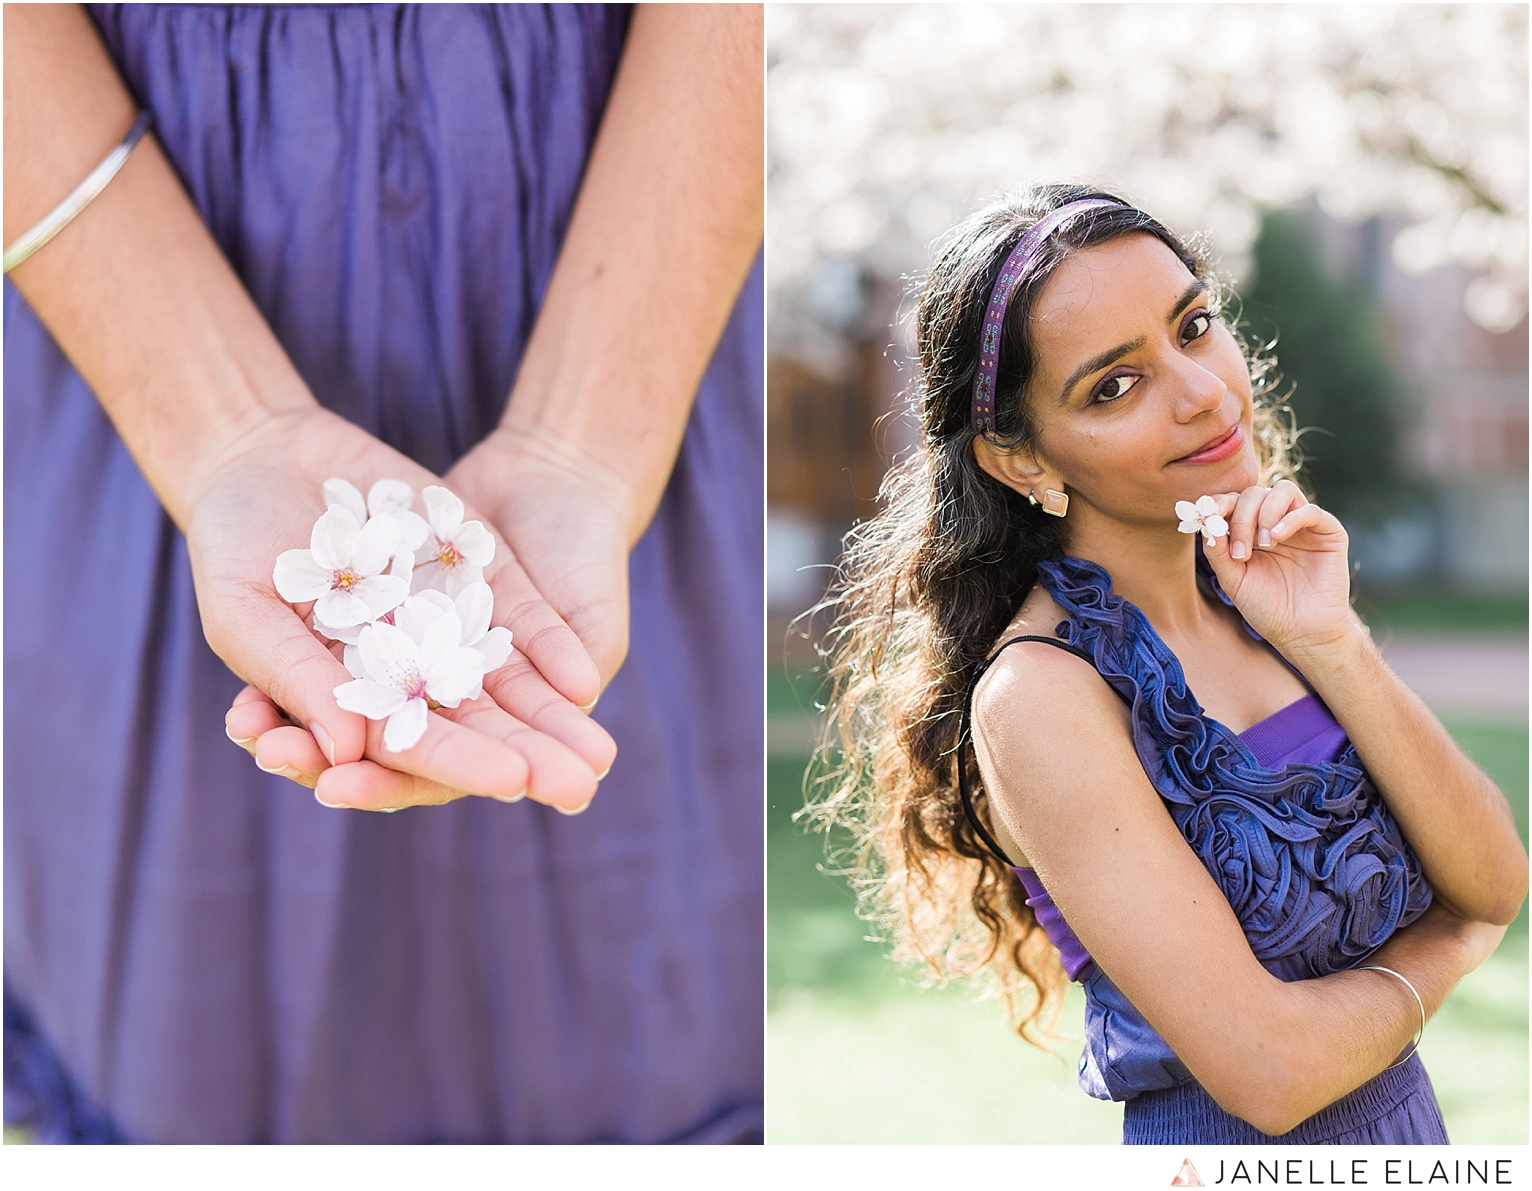 Sufience-Harkirat-spring portrait session-cherry blossoms-uw-seattle photographer janelle elaine-48.jpg